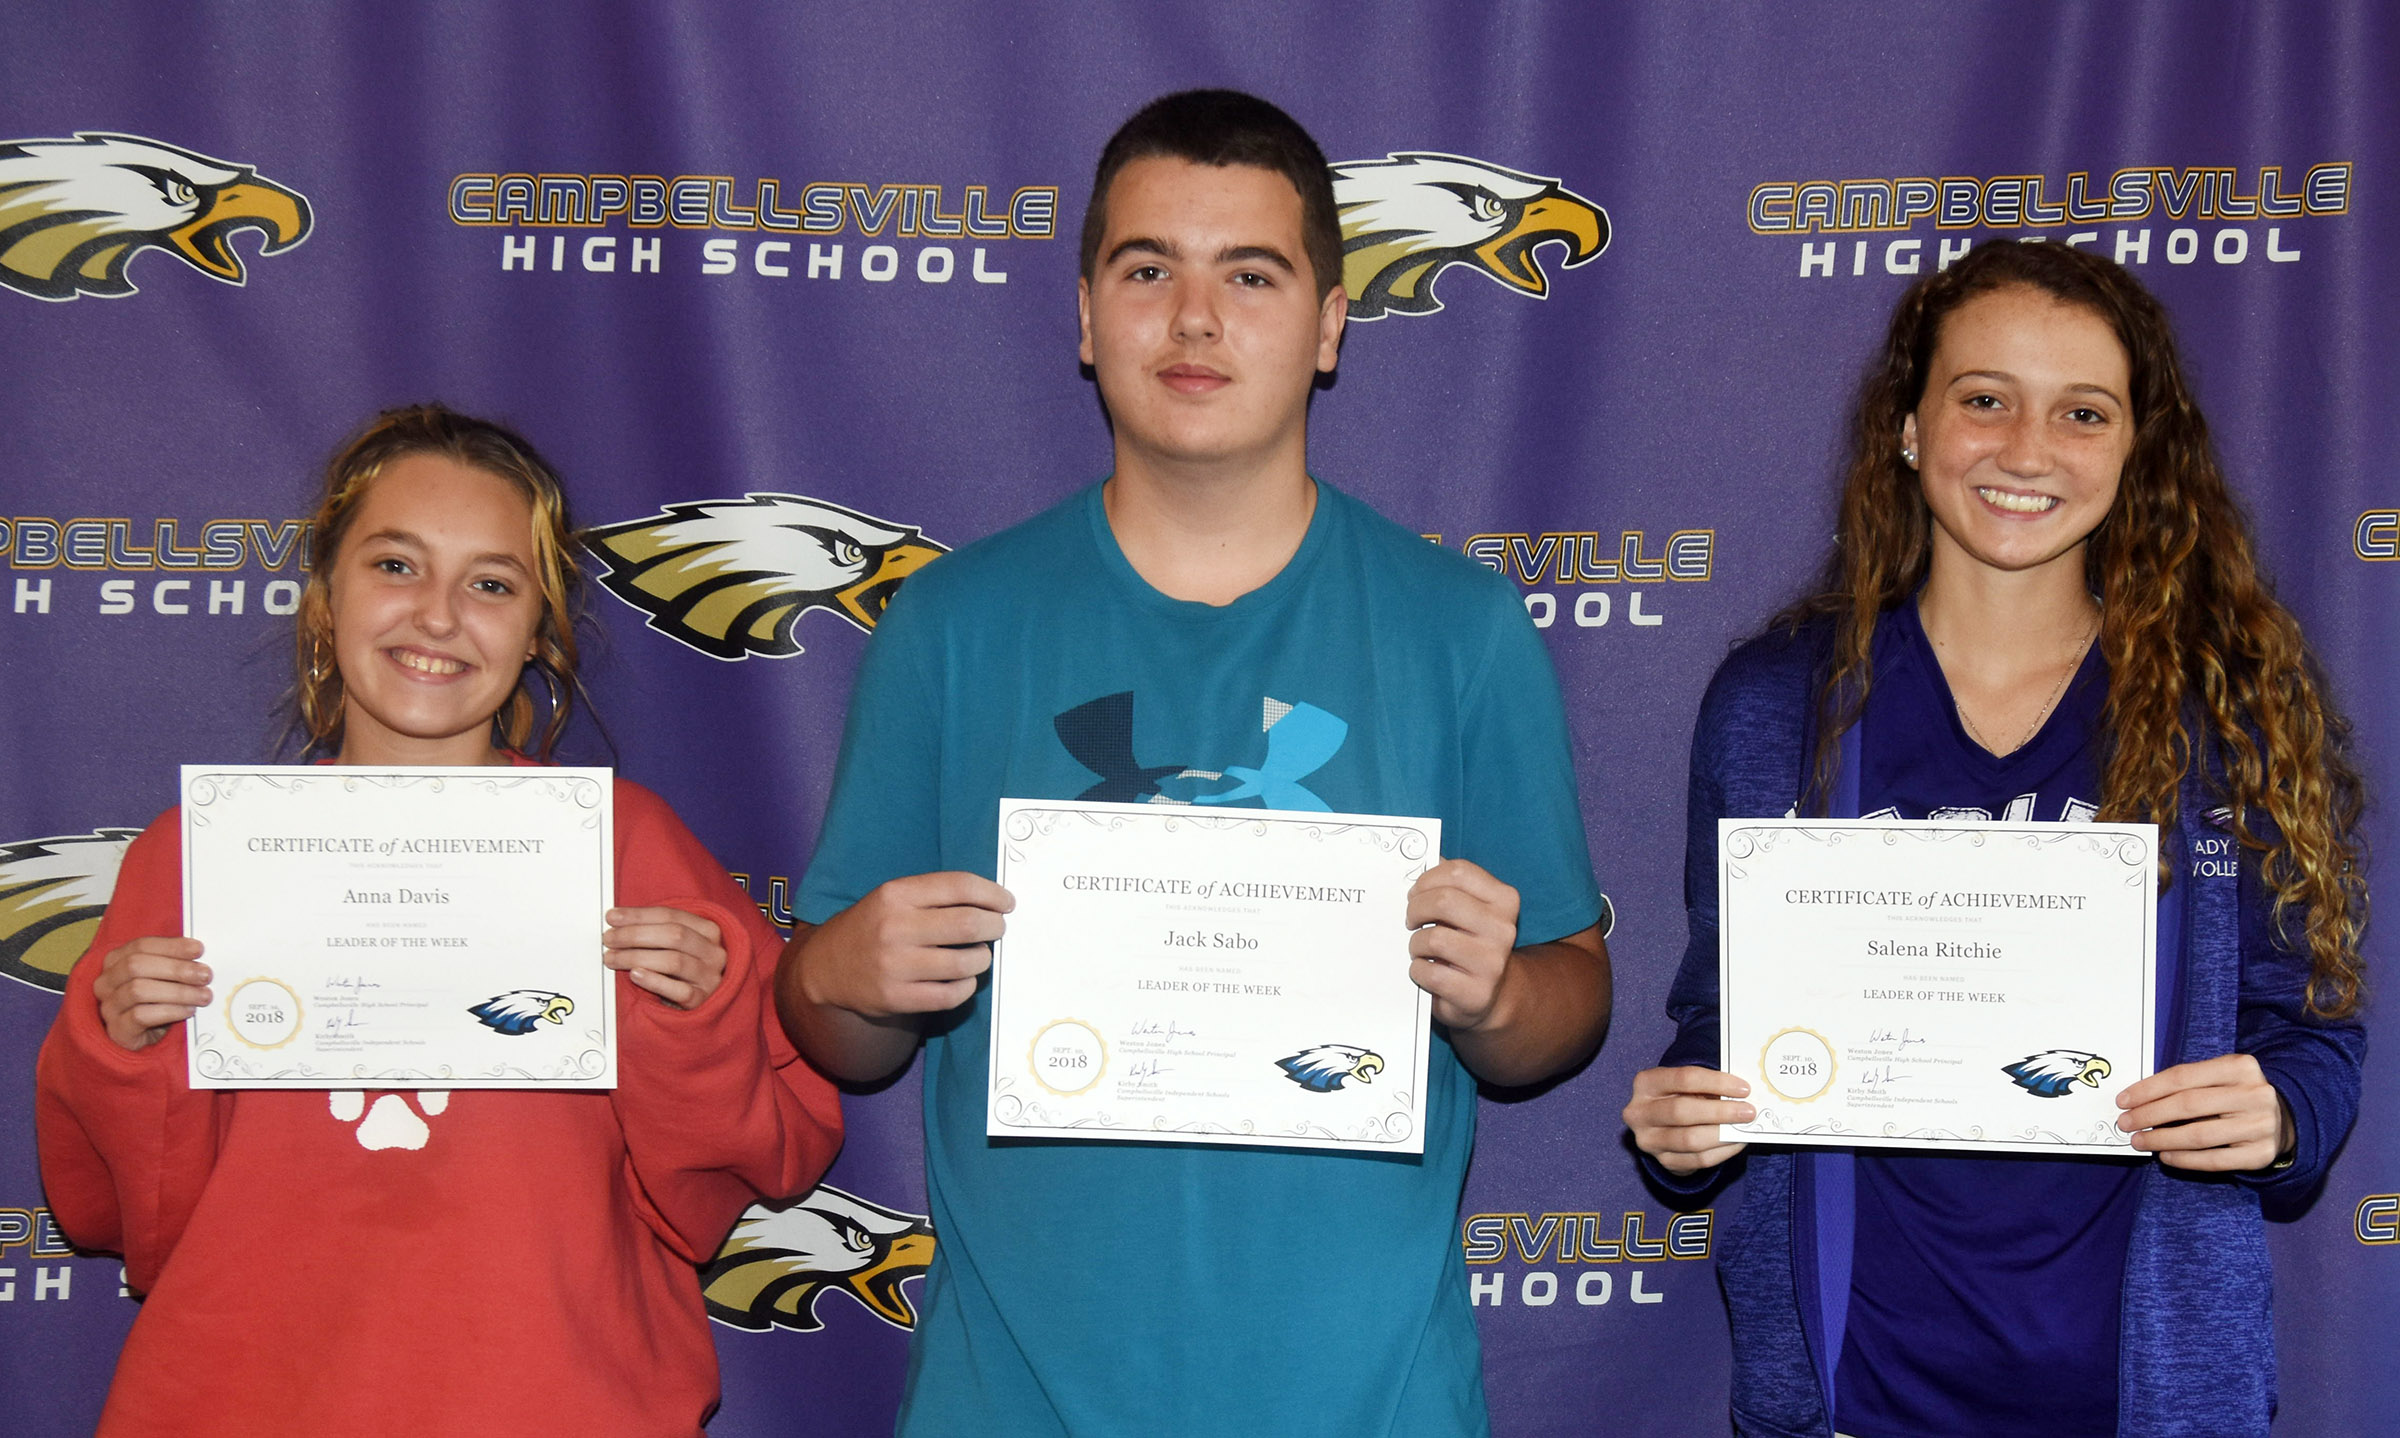 From left are sophomore Anna Davis, freshman Jack Sabo and senior Salena Ritchie. Absent from the photo is junior Brennon Wheeler.